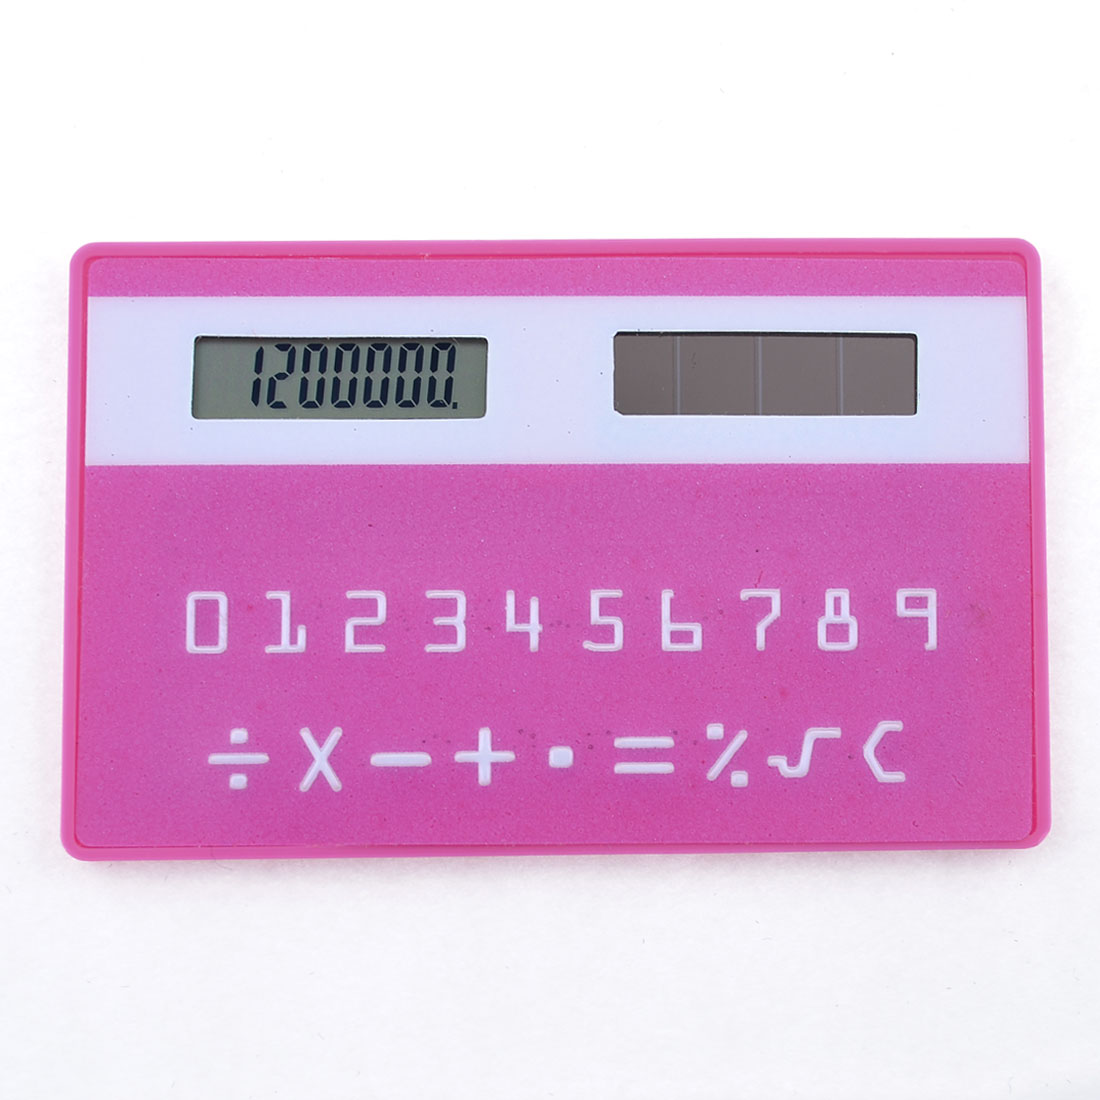 Household Rectangle Card Designed 8 Digit LCD Pocket Calculator White Fuchsia